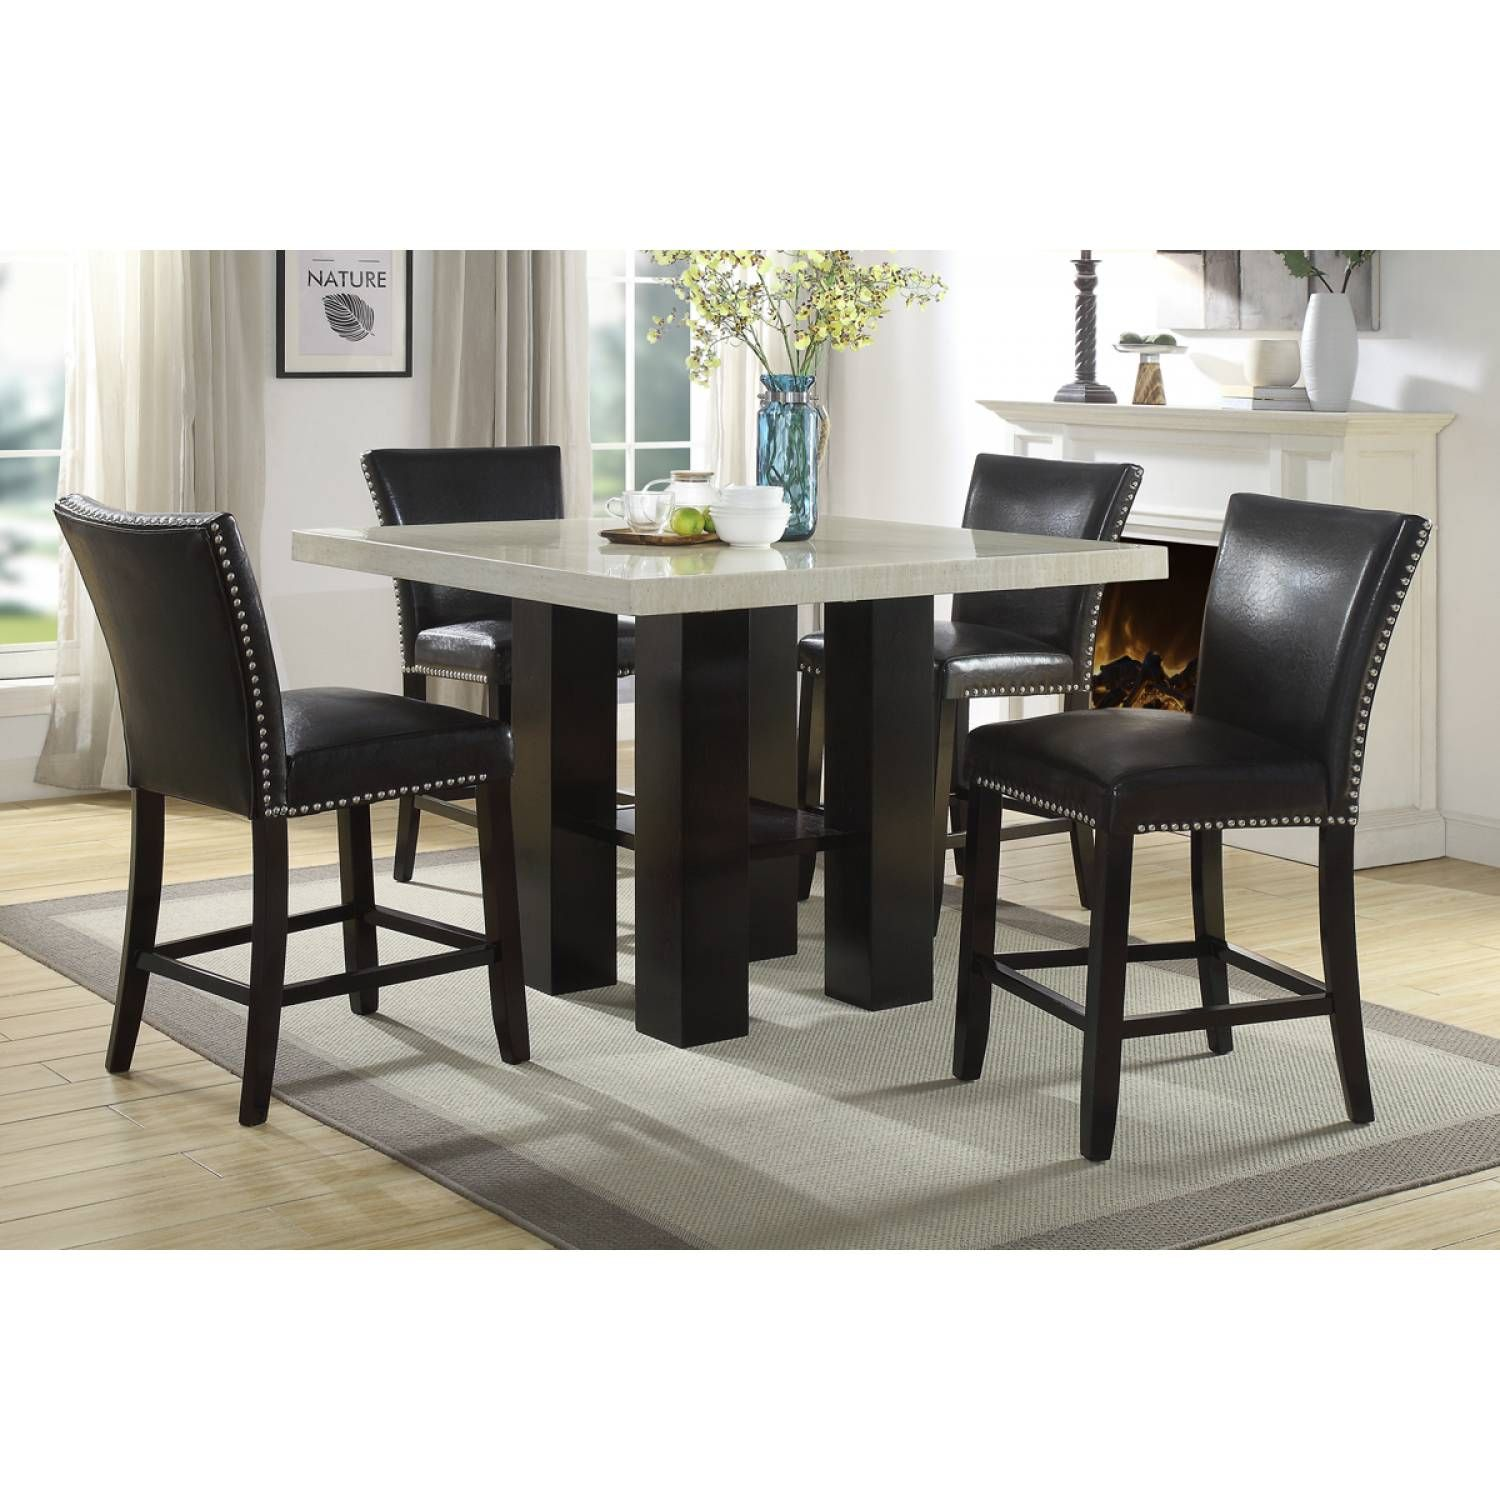 F1780 High Chair Counter Height Dining Table Set Counter Height Dining Table Counter Height Table